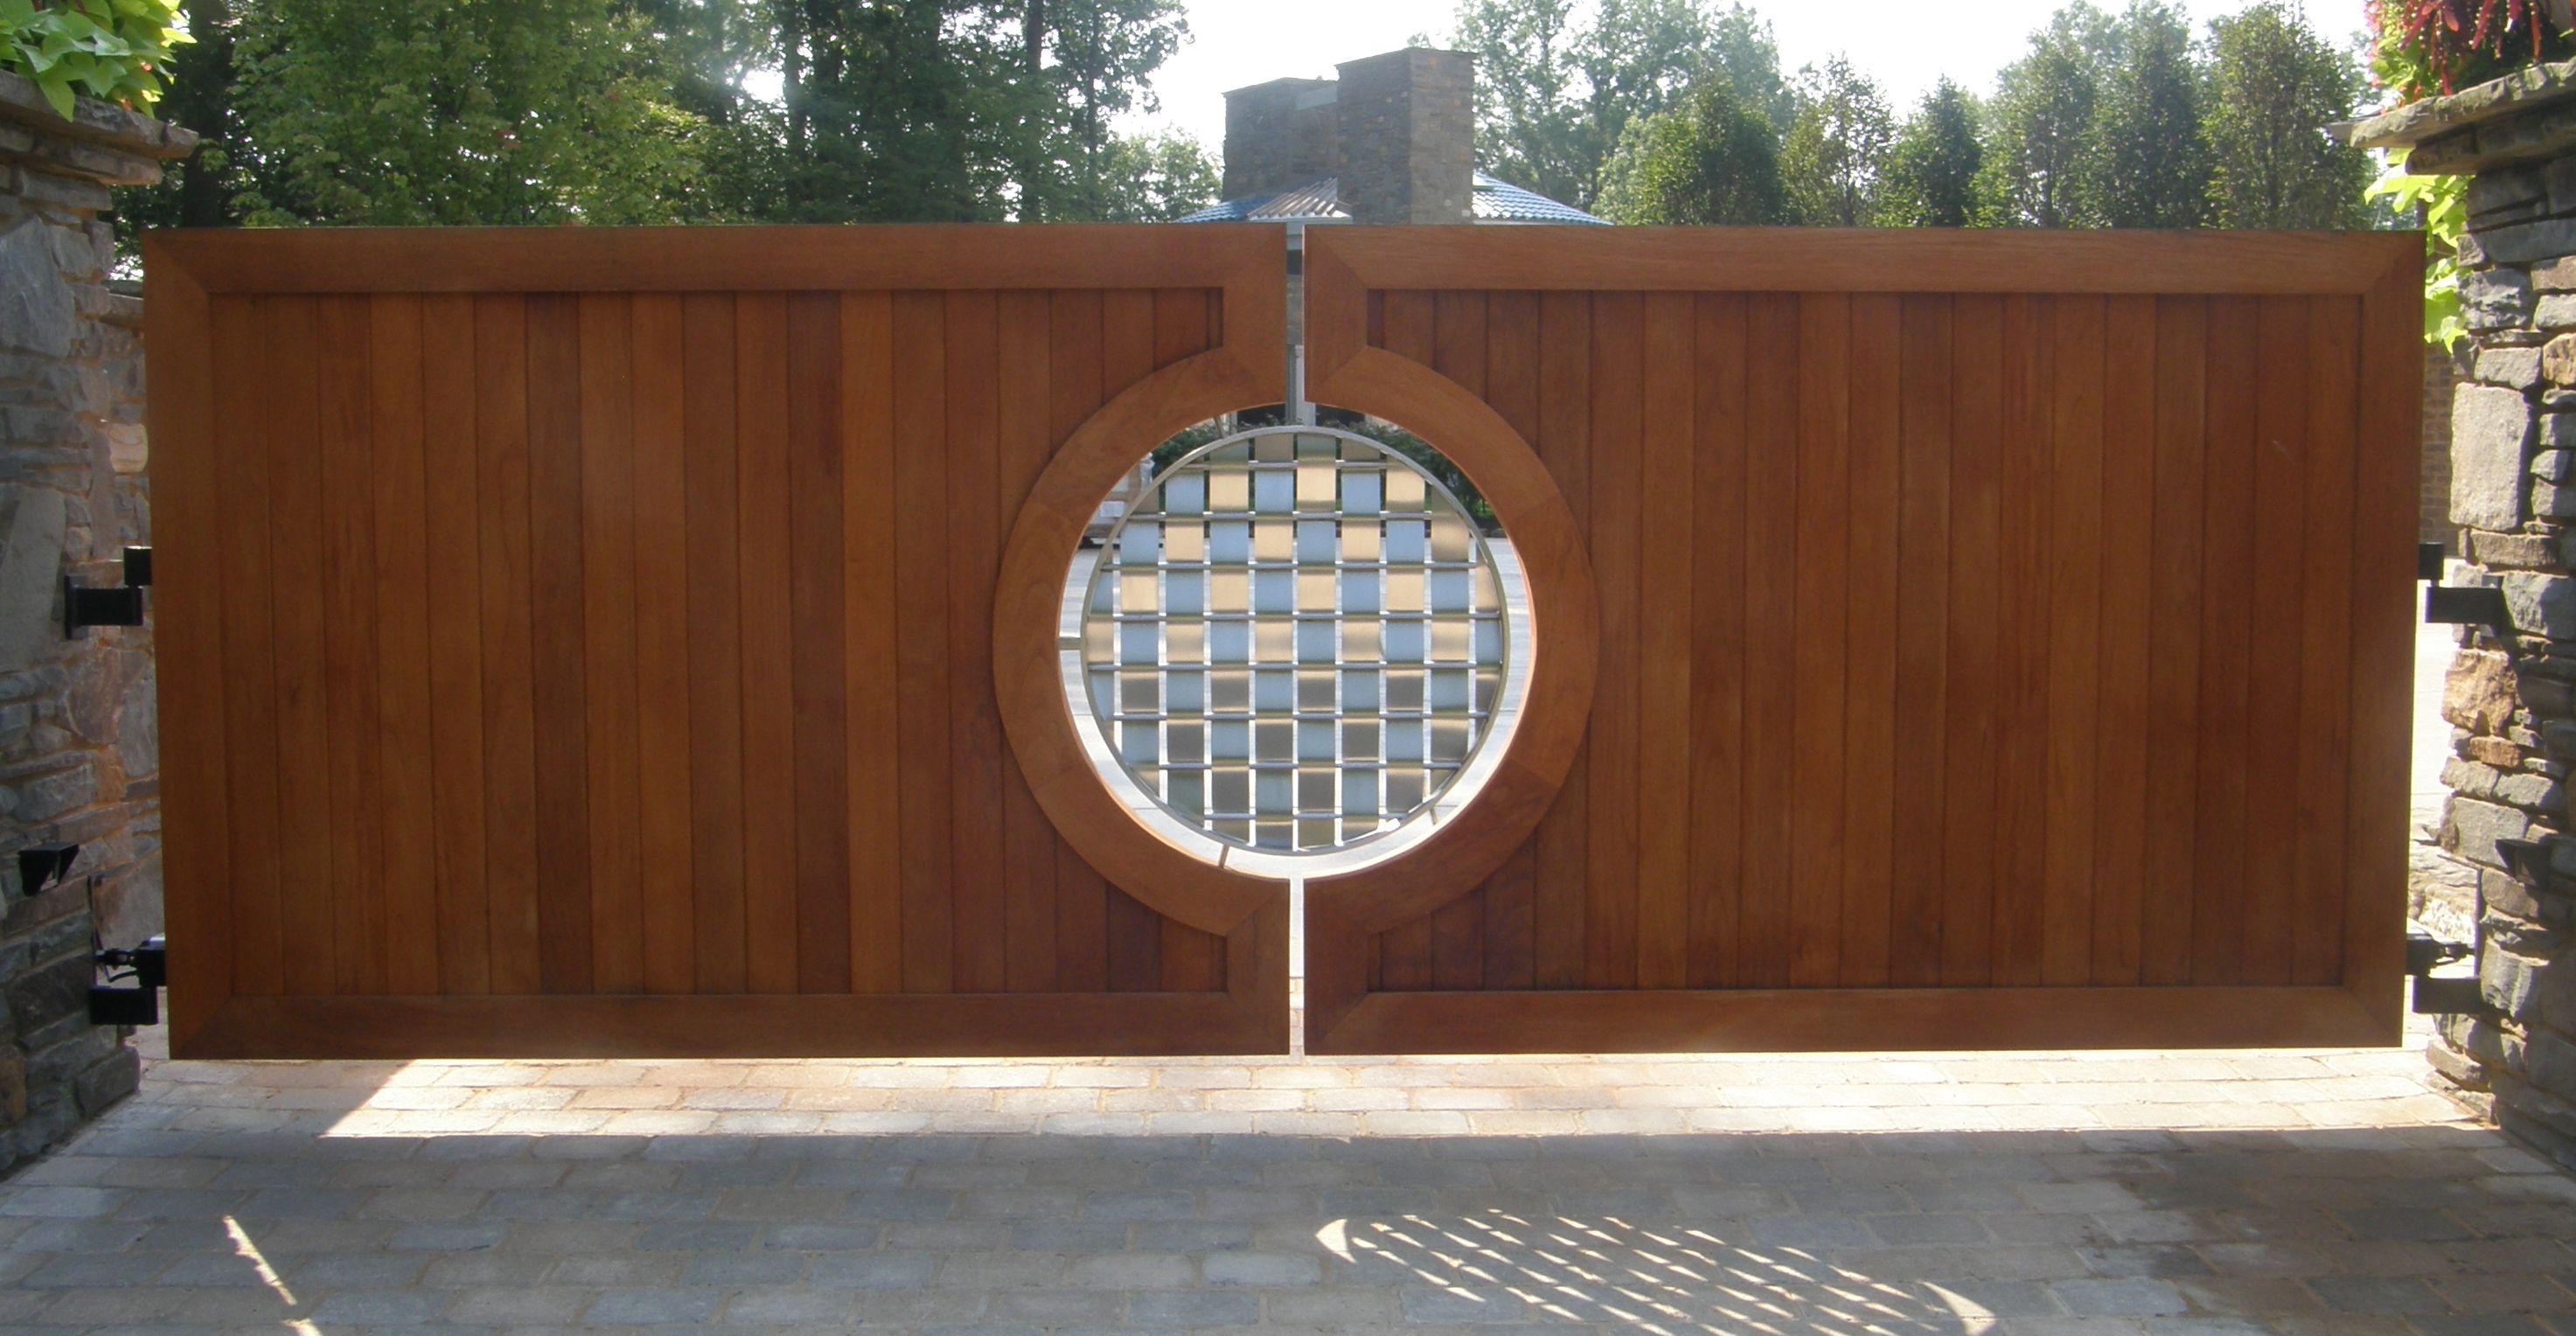 Charming Wooden Driveway Gates Photos. Fence Gate Design Ideas Fence Gate .